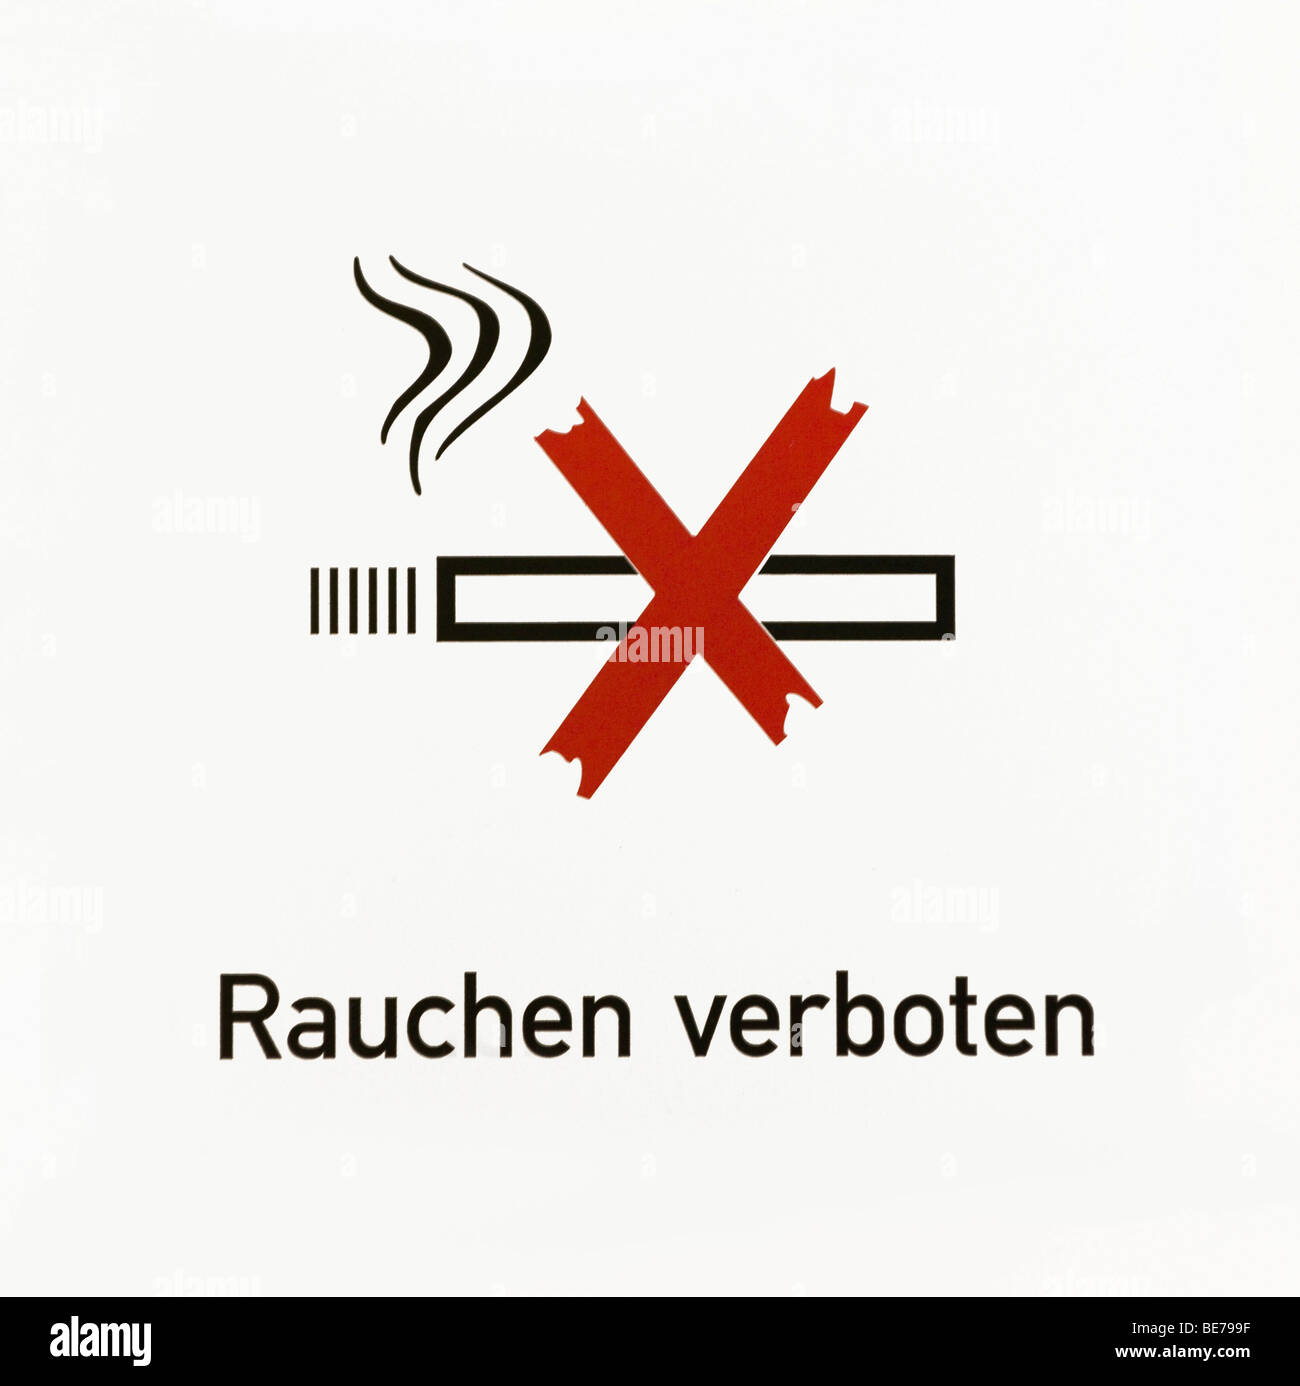 Sign, Rauchen verboten, German for smoking is prohibited, with pictogram - Stock Image